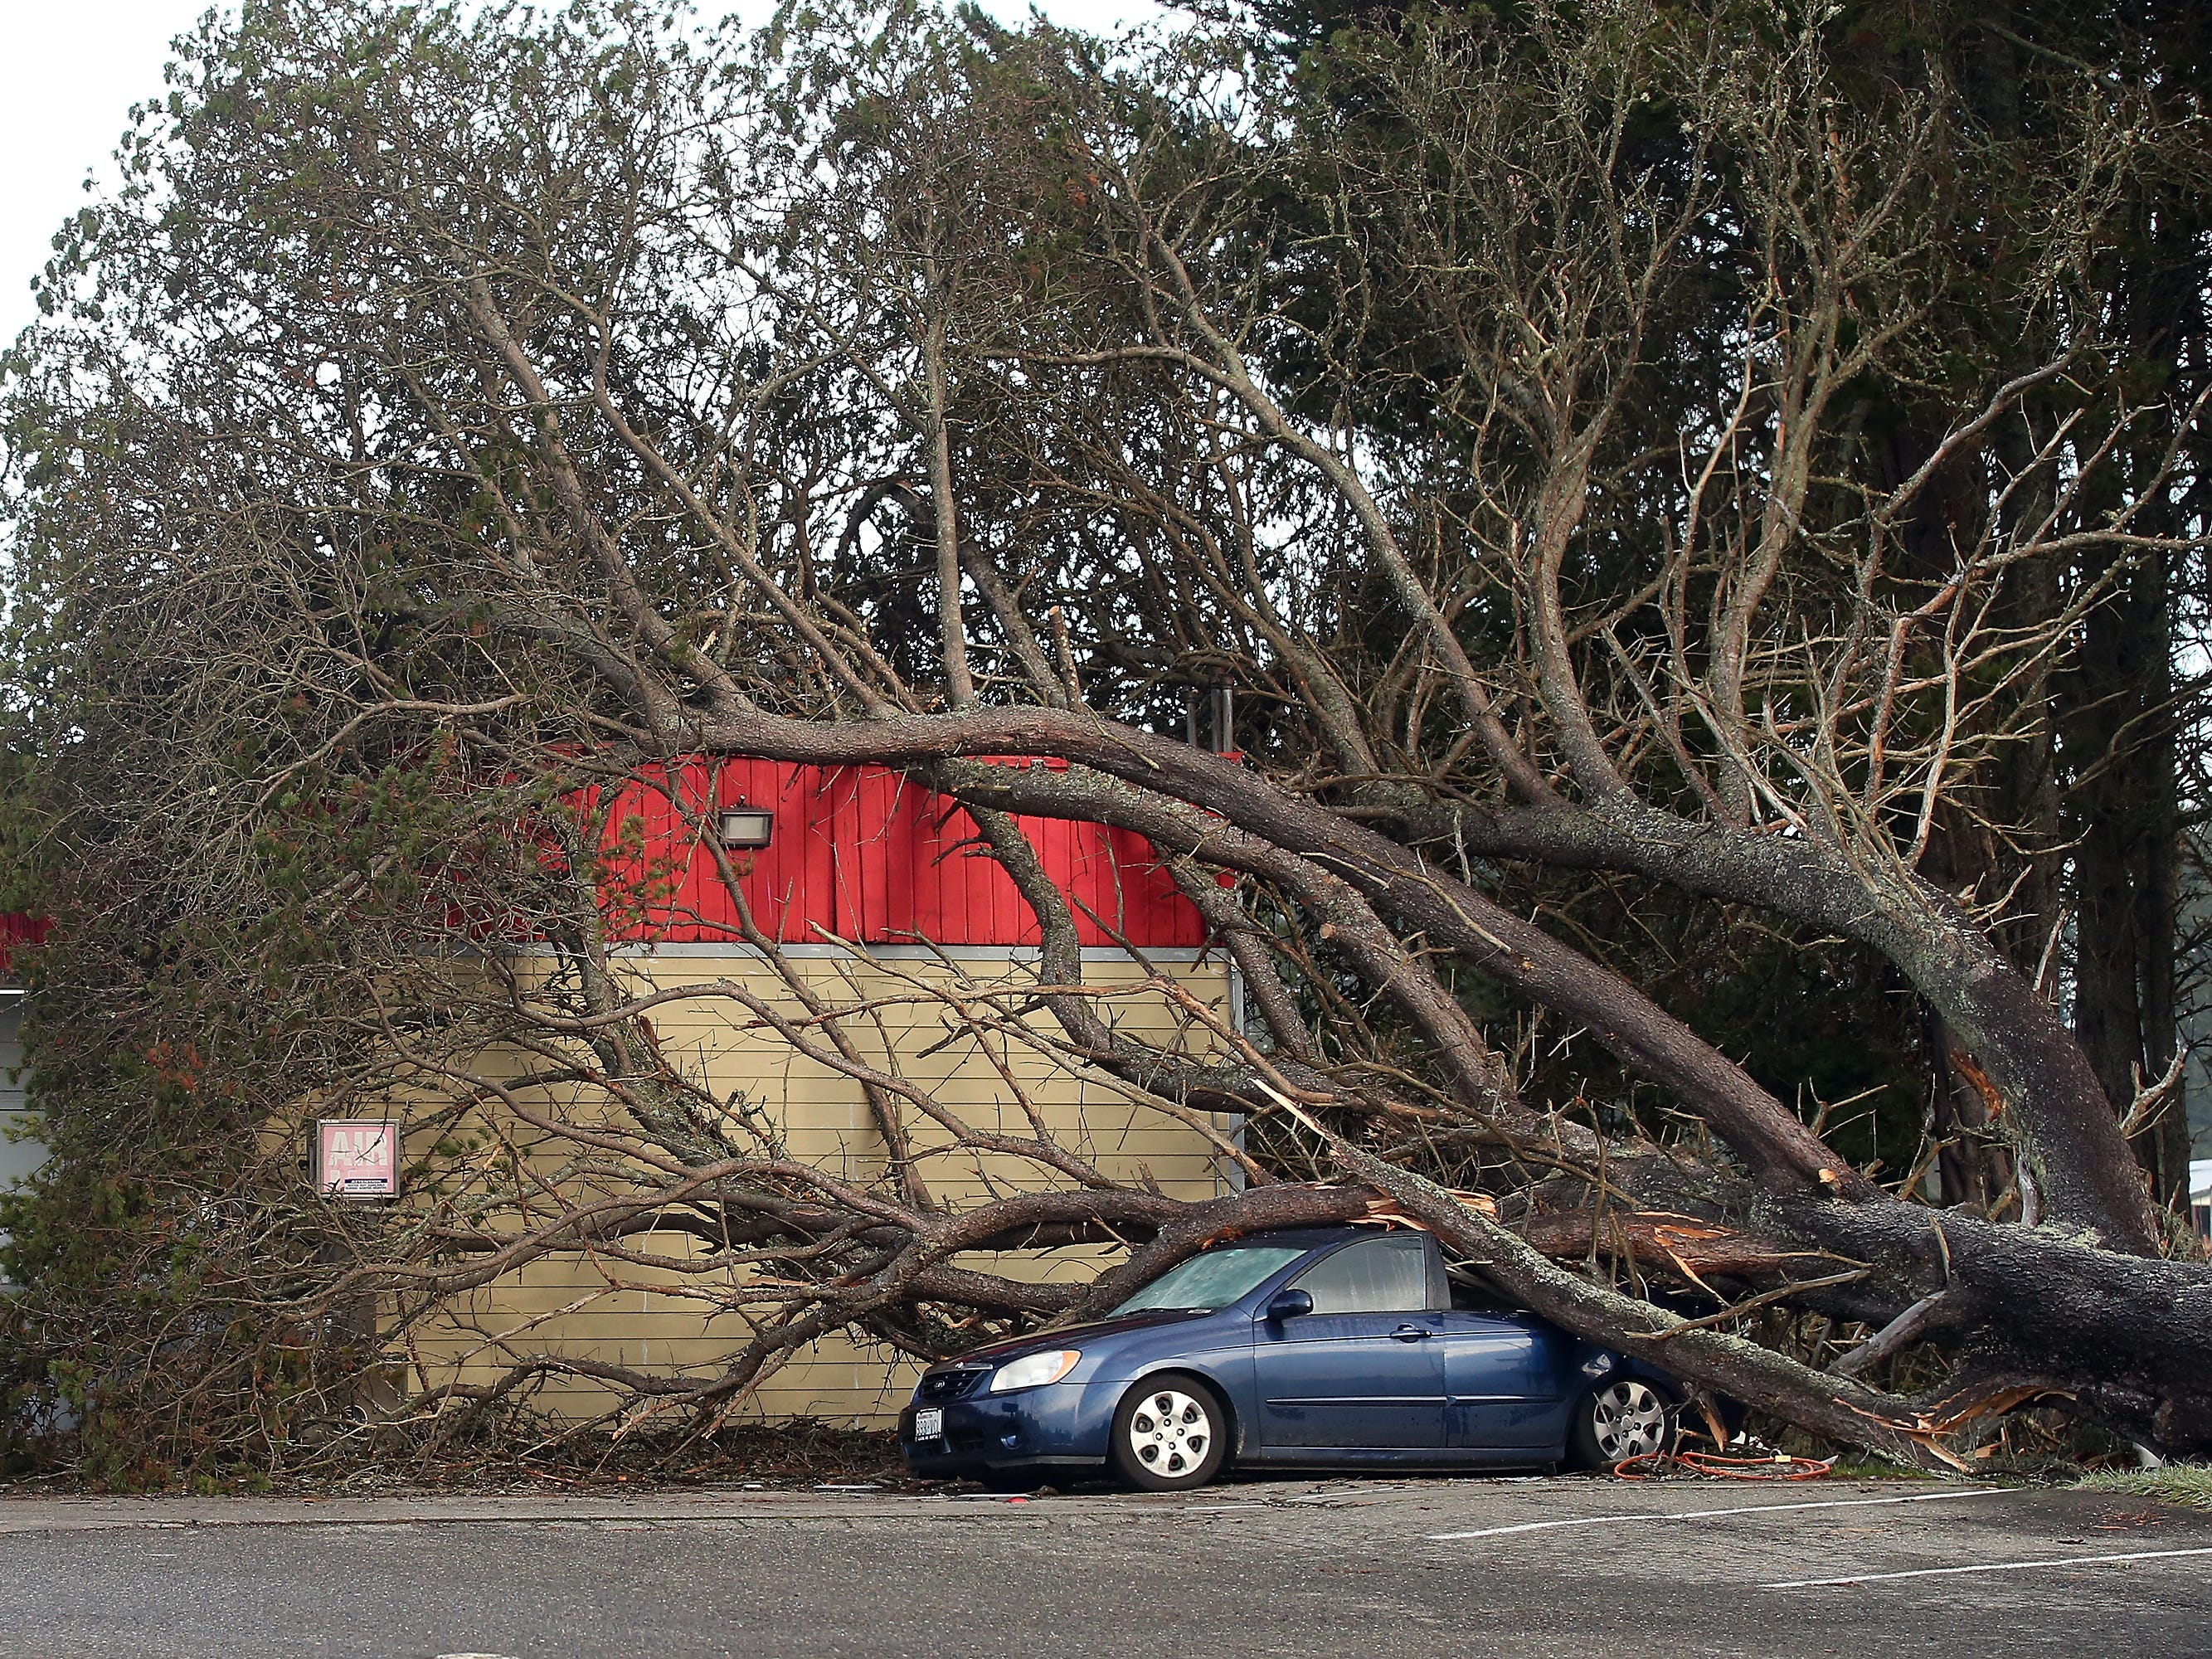 A tree brought down by Thursday's wind storm rests on top of a car at the Central Valley Store on Central Valley Rd in Poulsbo on Friday, December 21, 2018.